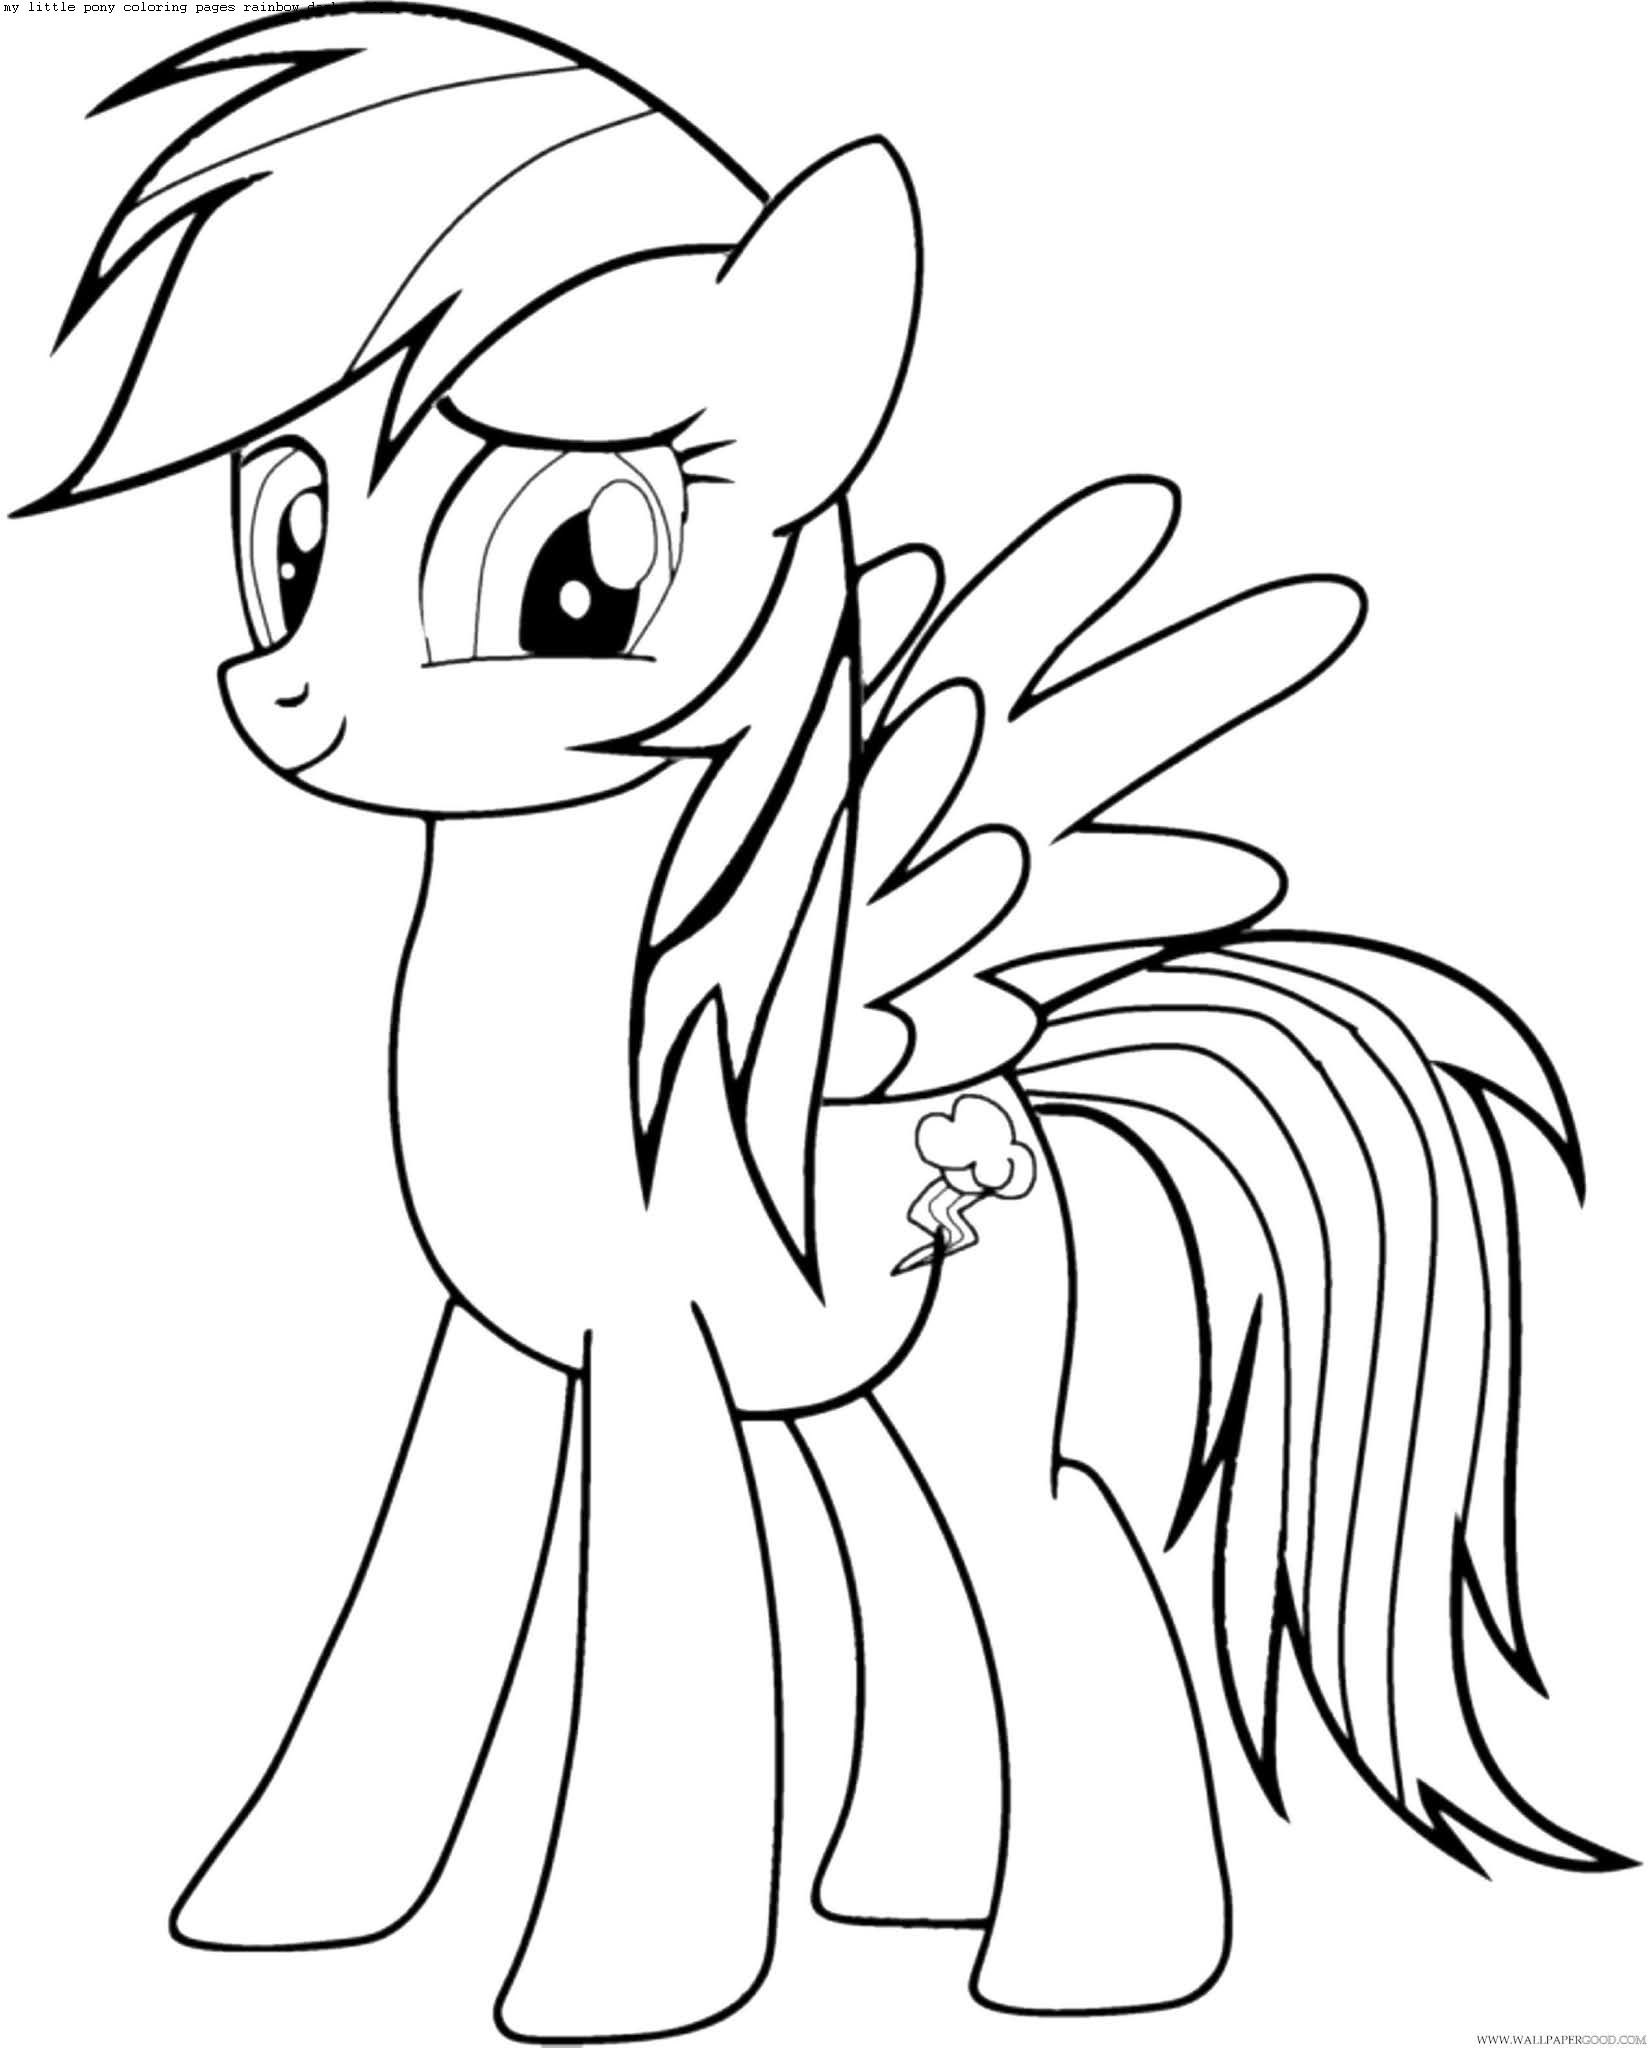 my little pony coloring rainbow dash wallpaper dress wash off skin marker hero thank you coloring pages My Little Pony Coloring Page